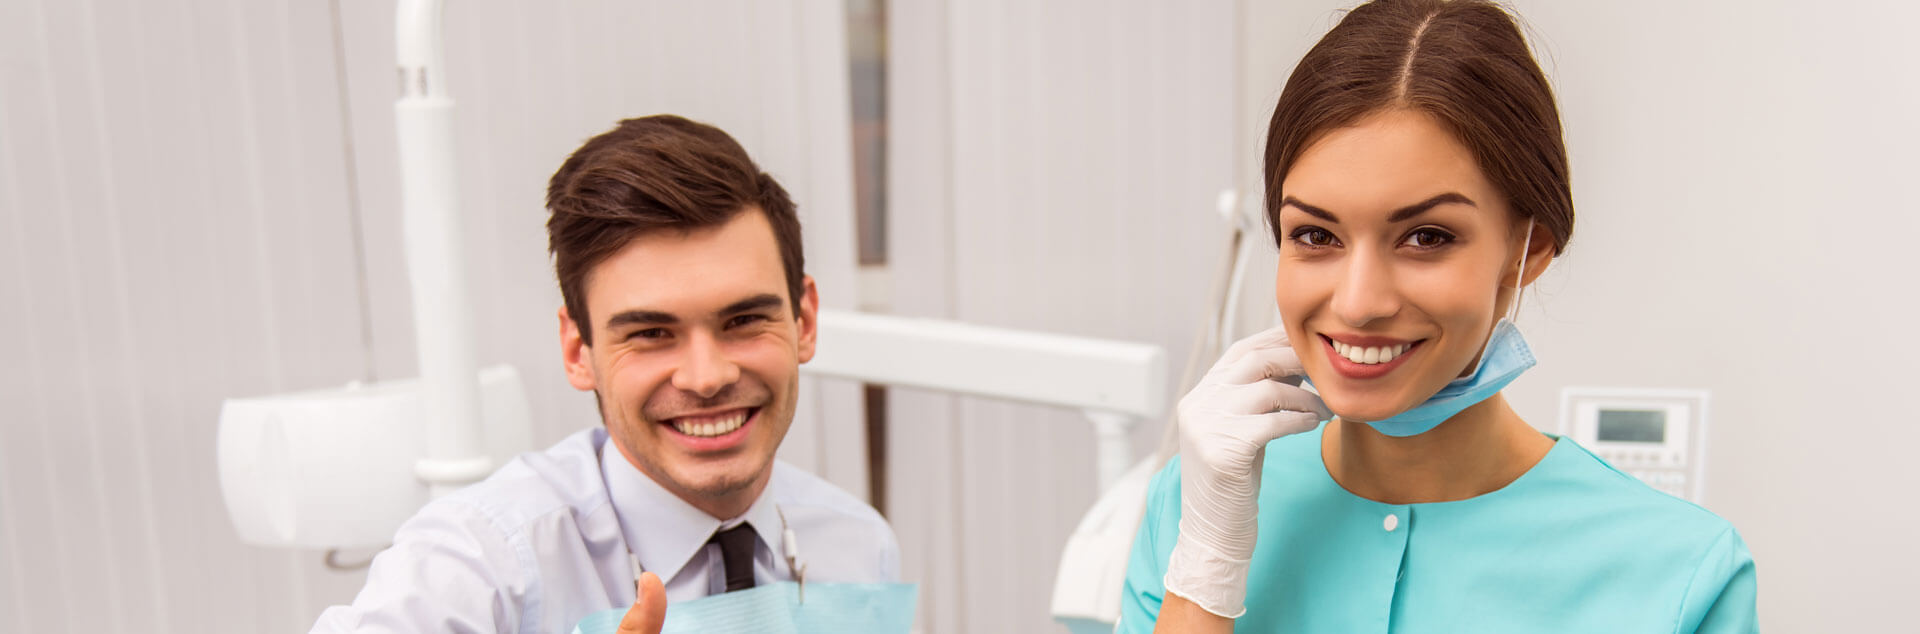 Male patient and female dental assistant smiling at the camera